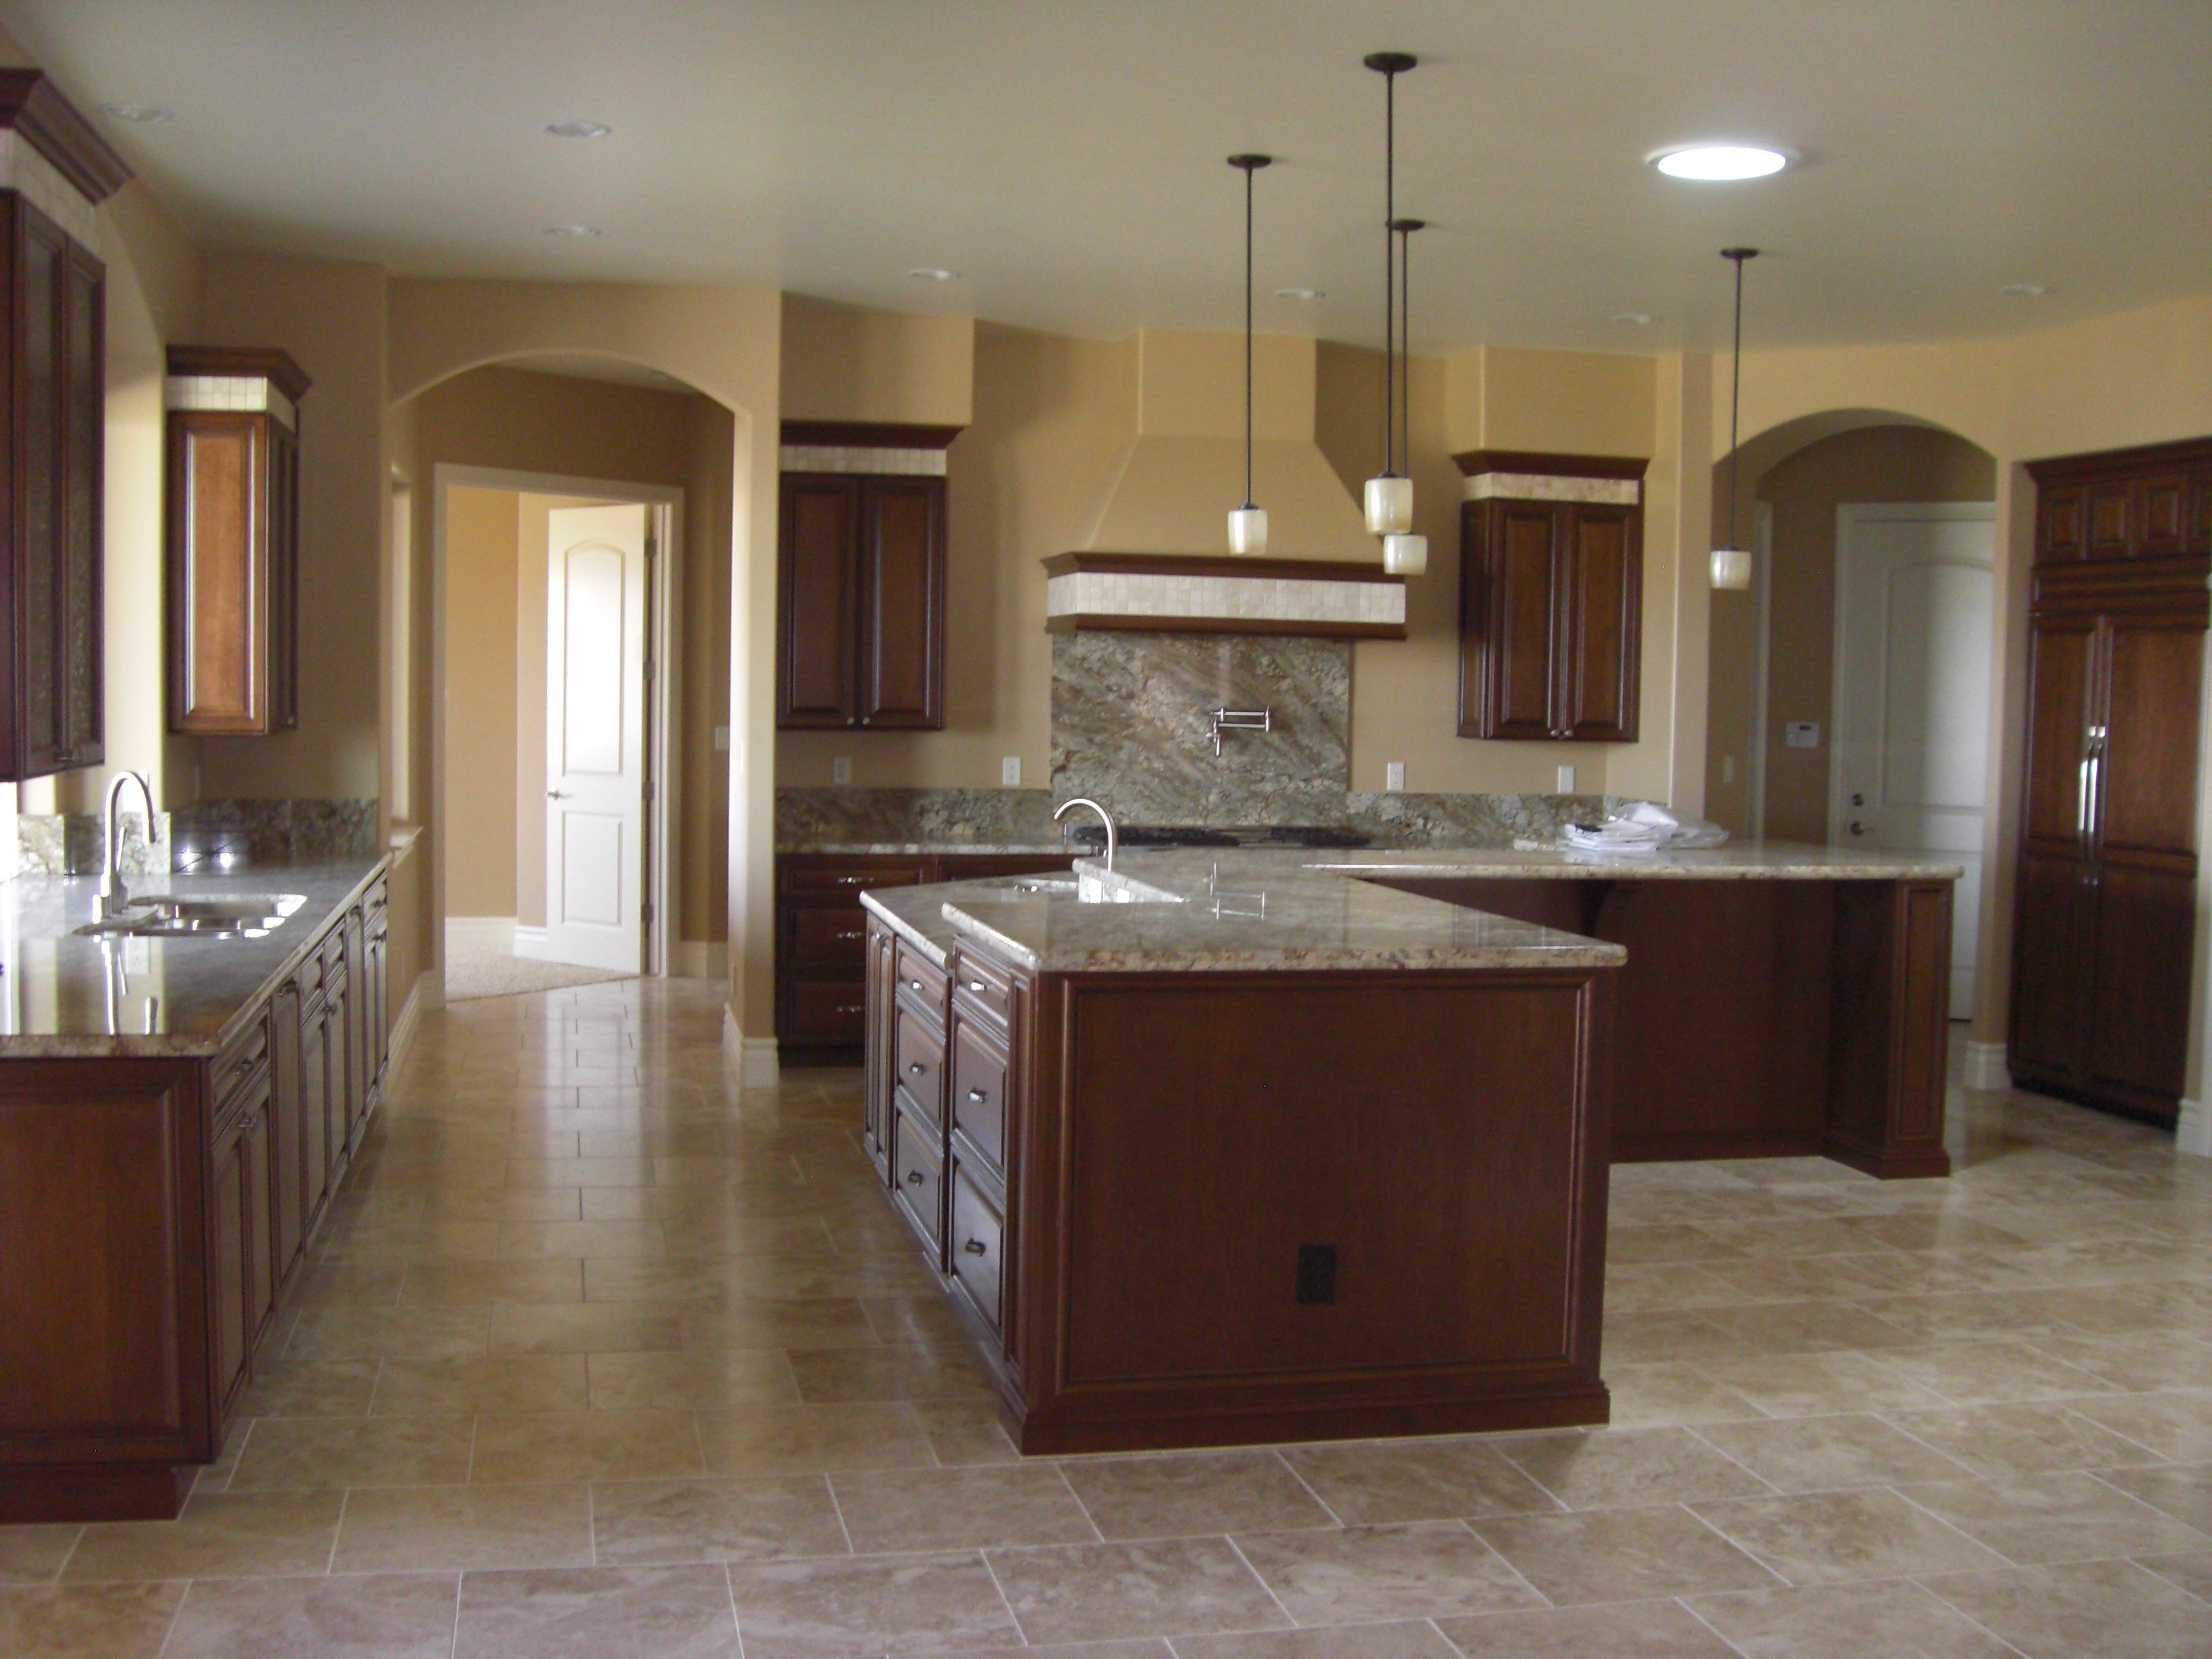 Travertine Flooring In Kitchen Kitchen Granite Slab Counters Cherry Cabinets Travertine 2x2